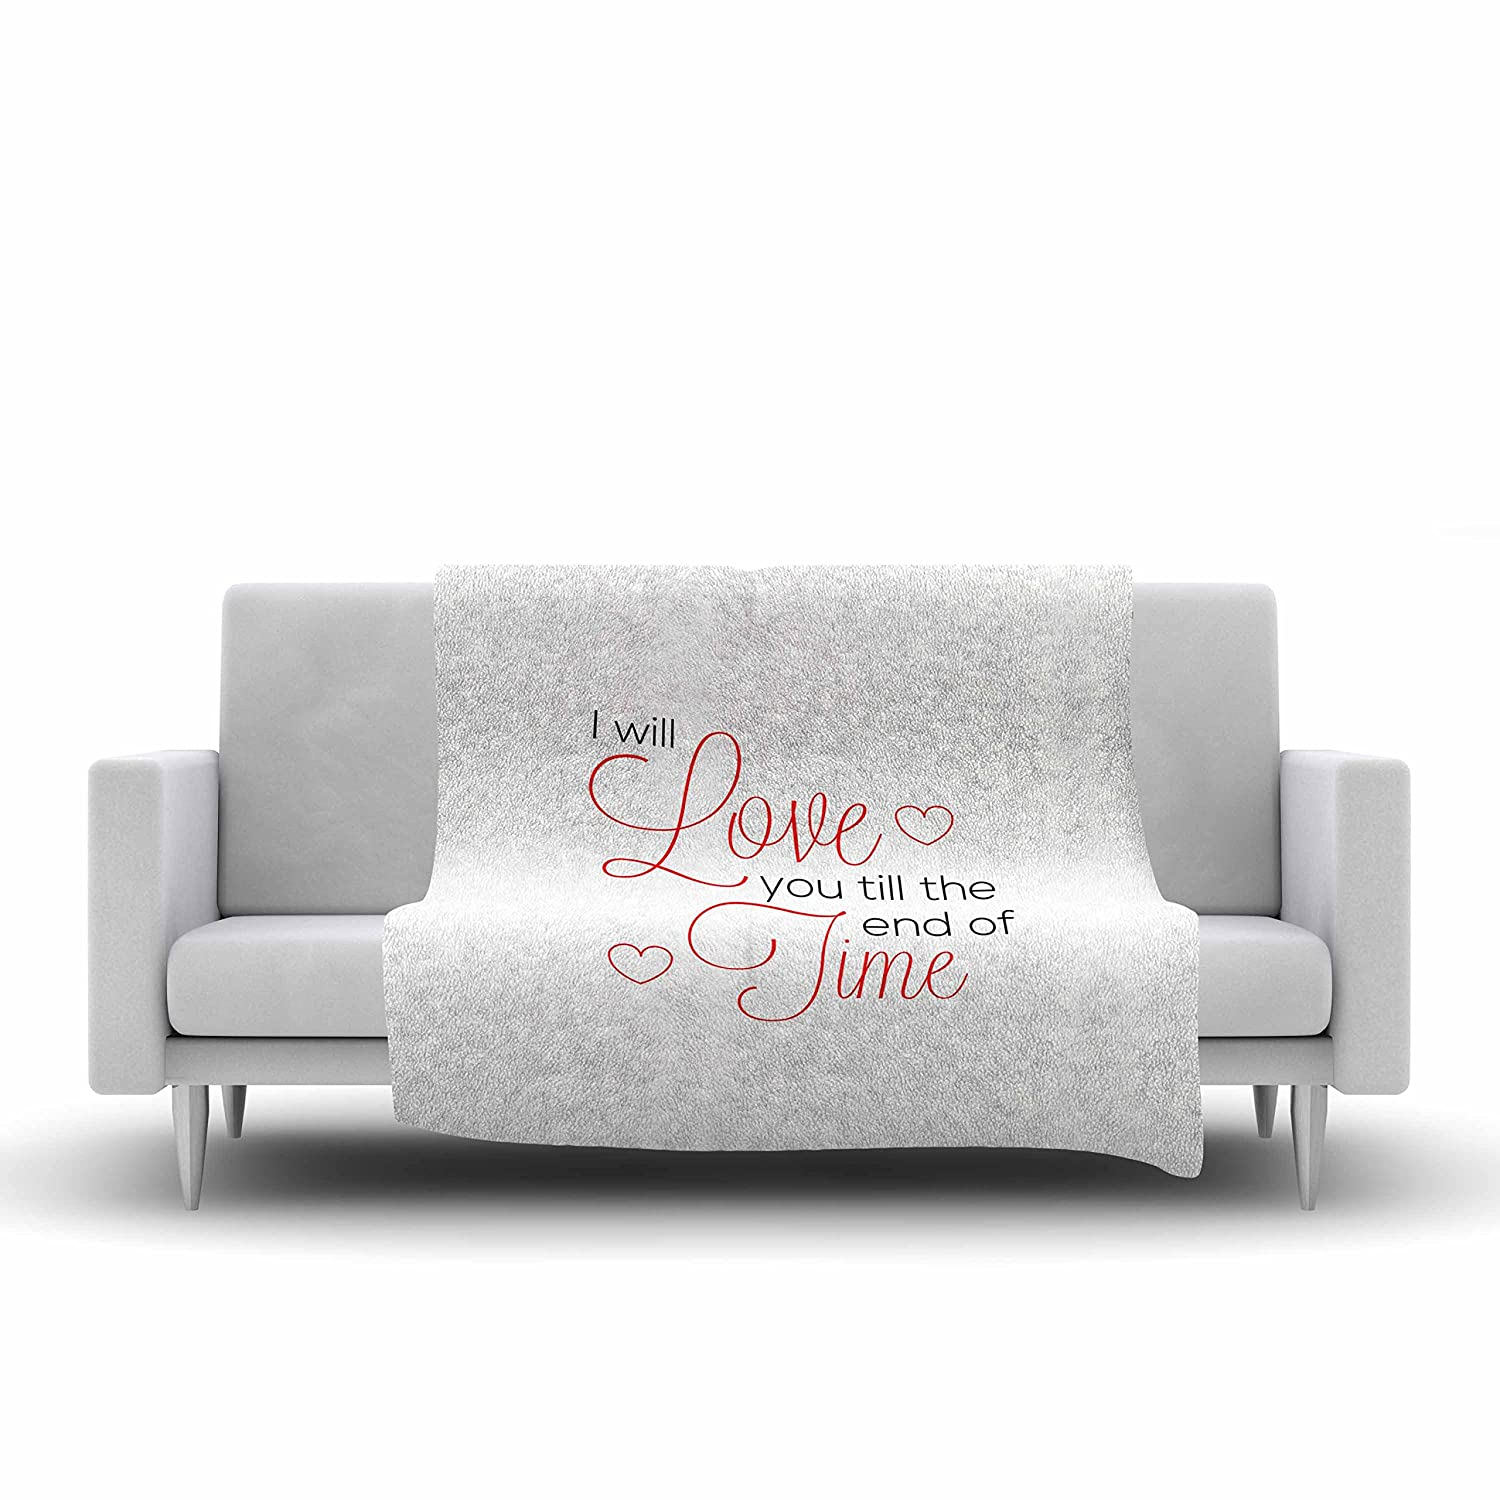 40 X 30 Kess InHouse NL Designs I Will Love You White Red Fleece Throw Blanket 40 by 30-Inch